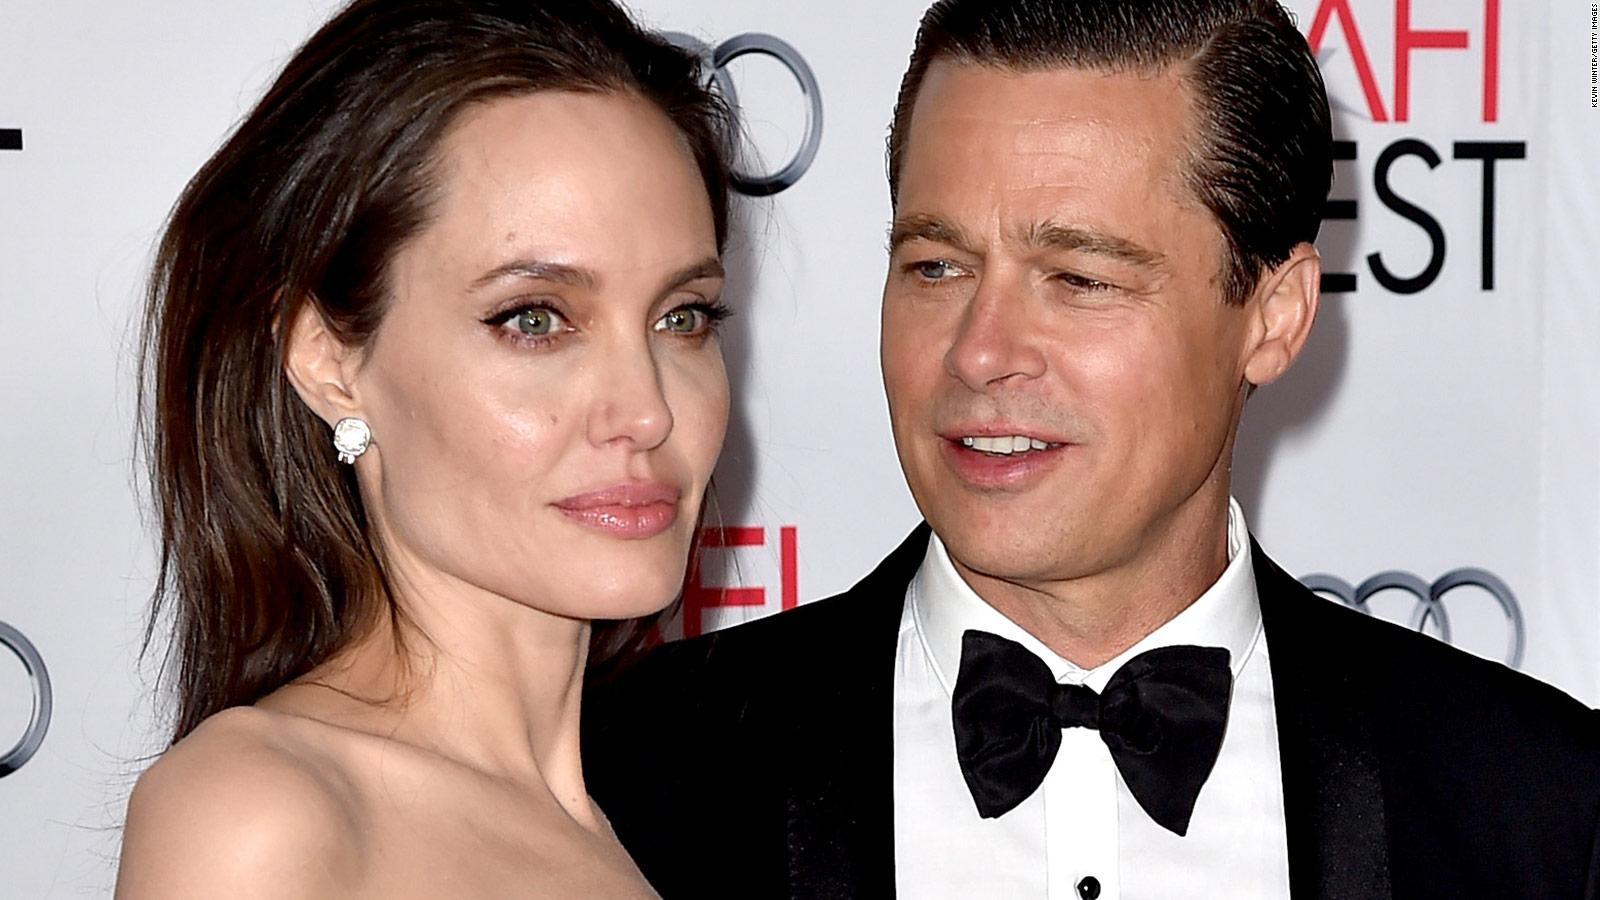 Angelina jolie to drop in africa brad pitt cheesed off at paris nude (69 image)